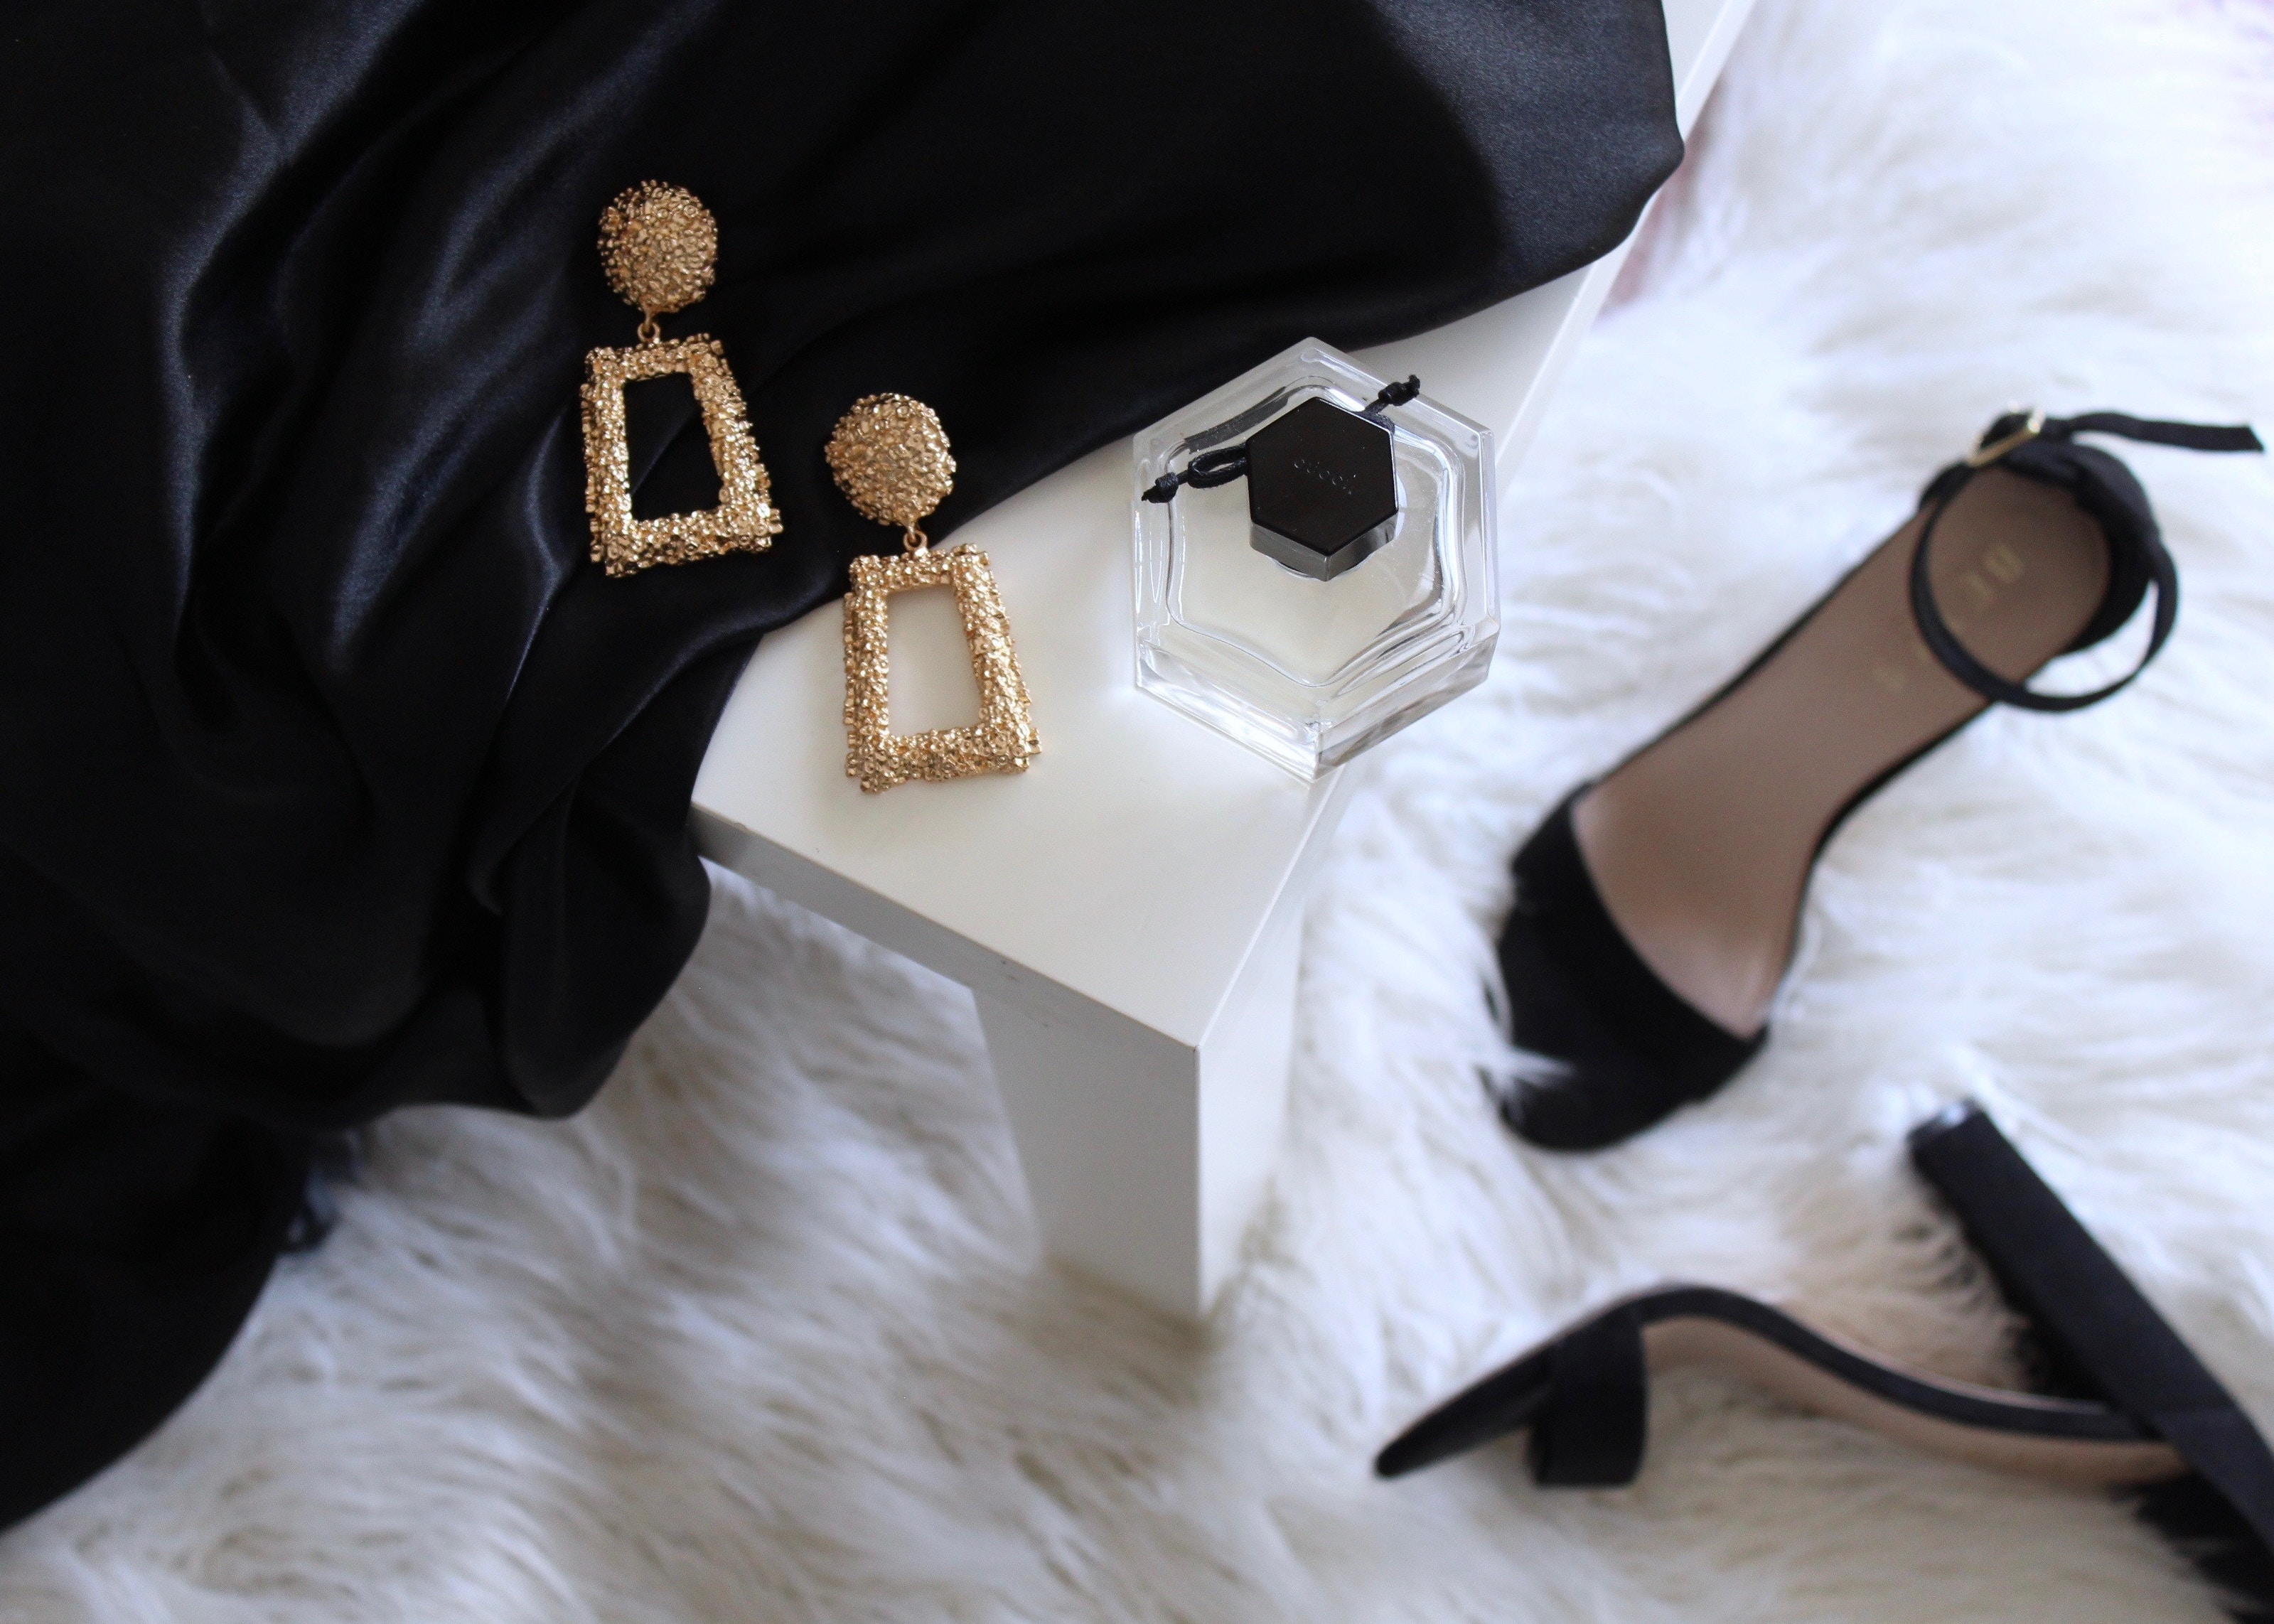 5 Luxury Items That Are Never Worth The Money